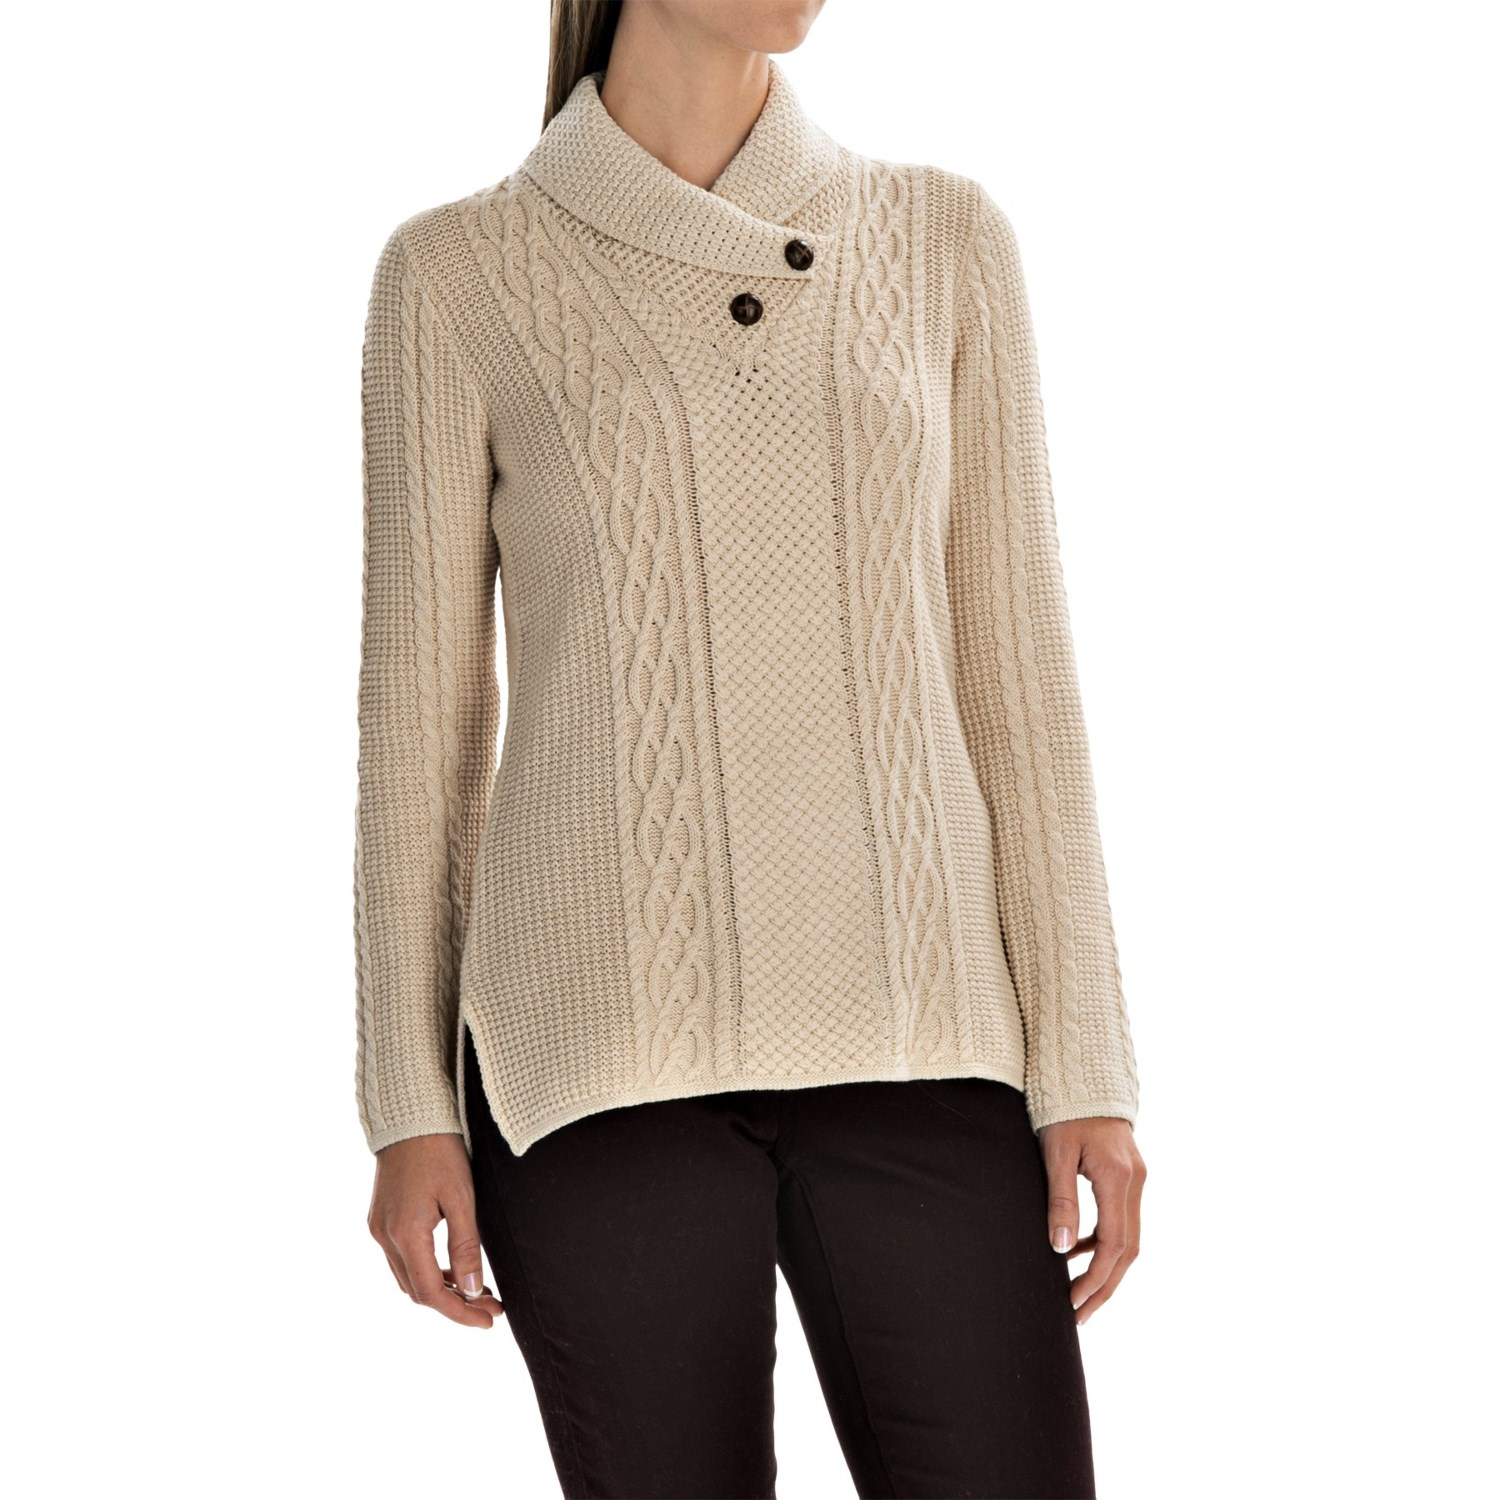 Women's cotton sweaters at Lands' End are the best cotton sweaters for women! Cotton sweaters at Lands' End. skip to content skip to navigation skip to search.